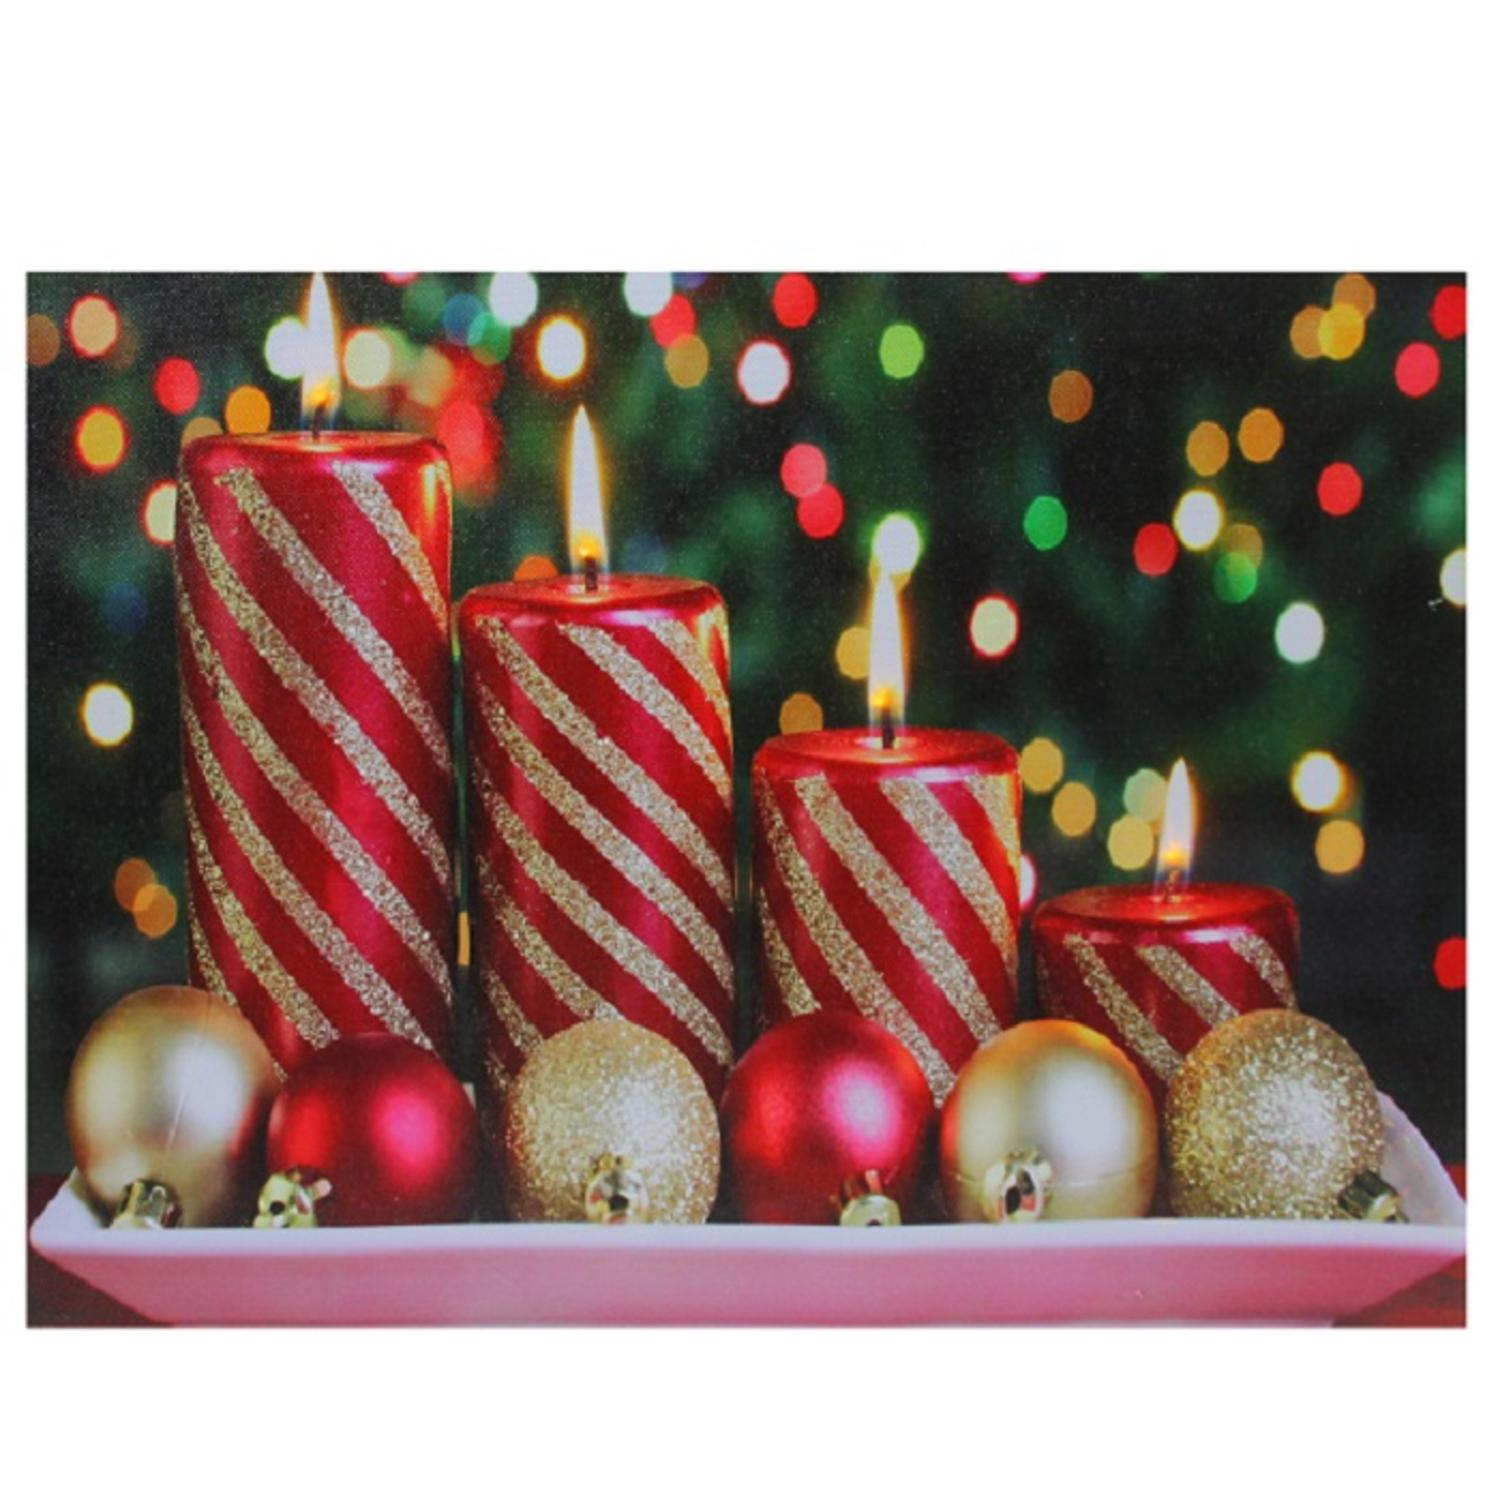 Led lighted christmas candles with ornaments canvas wall art x tanga - Appealing christmas led candles for christmas decorations ...